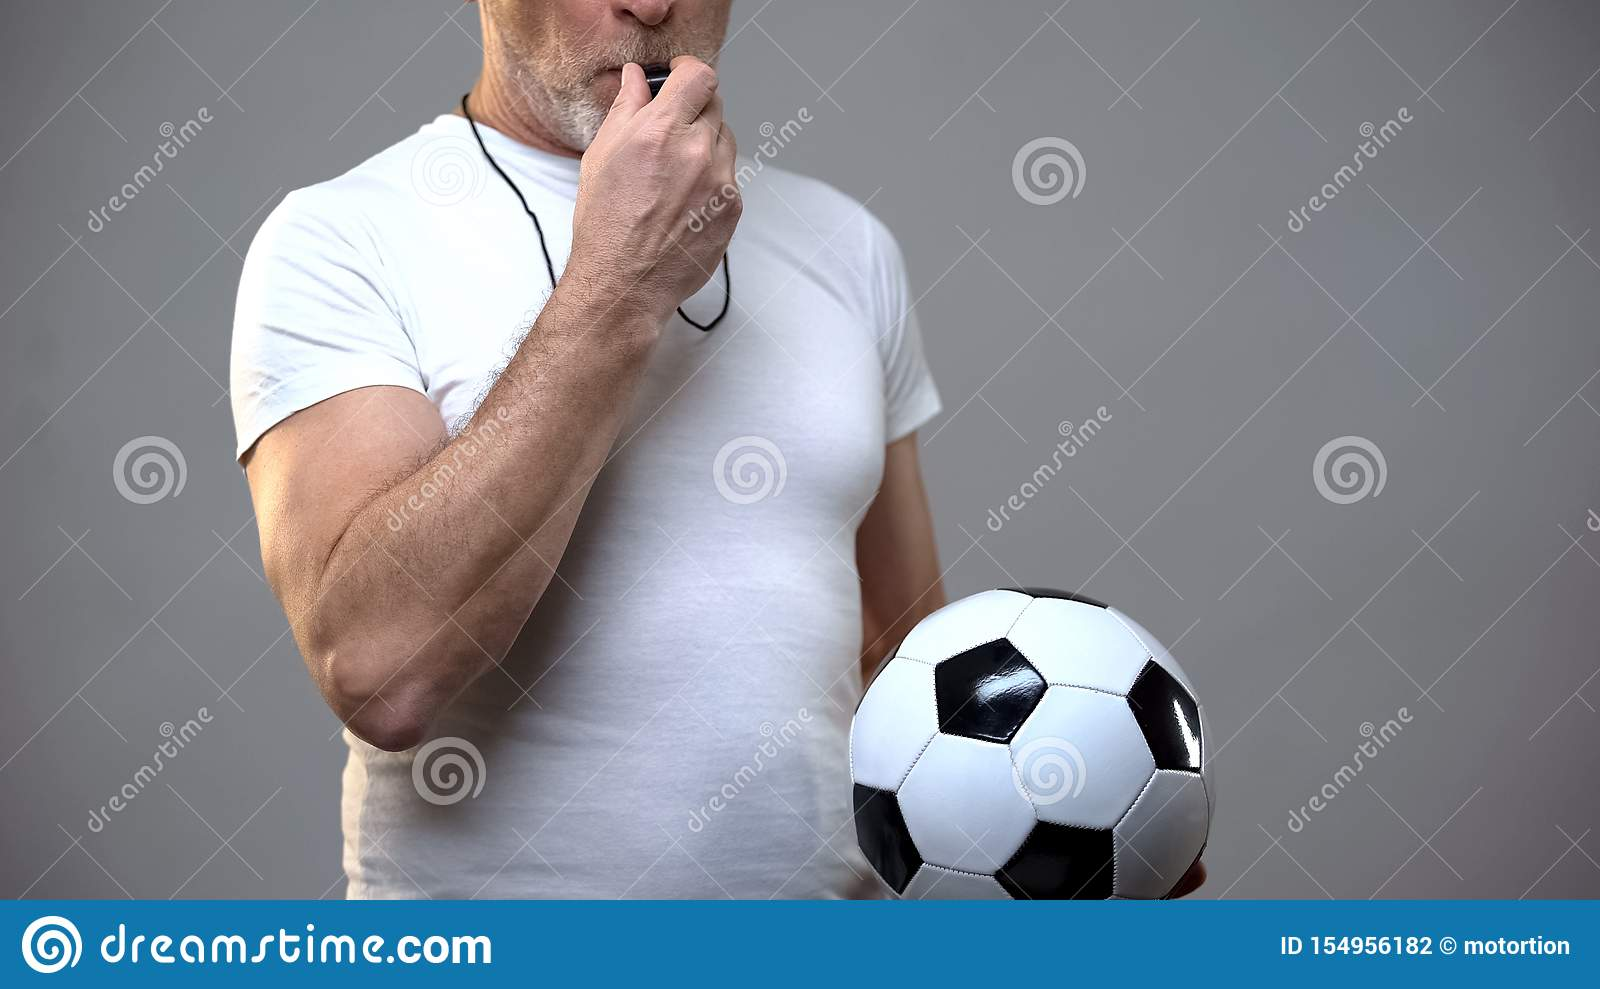 Mature sportive man holding football ball and blowing whistle, coach, training